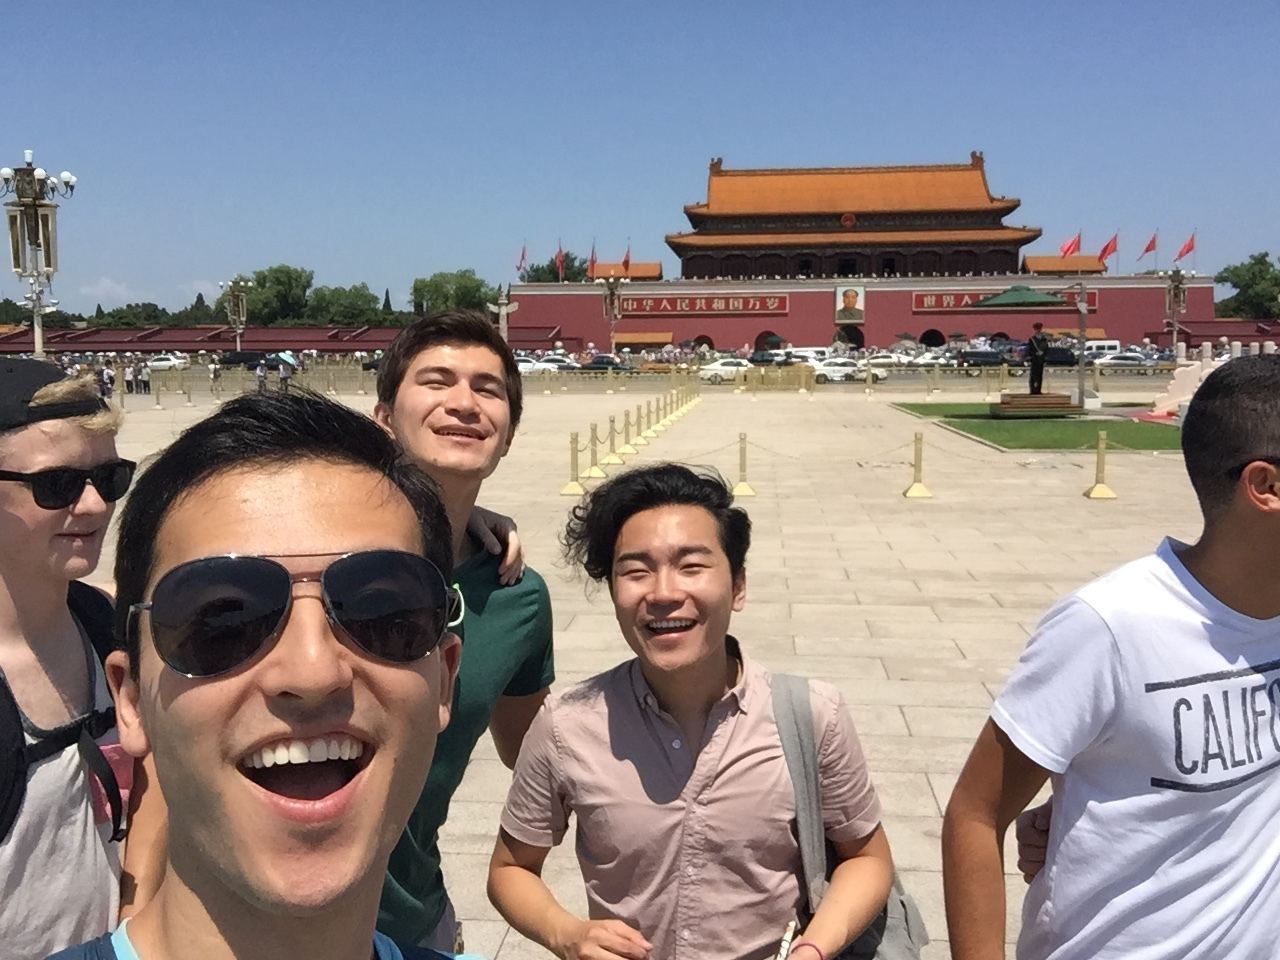 Last but not least, an obligatory Tiananmen Square selfie